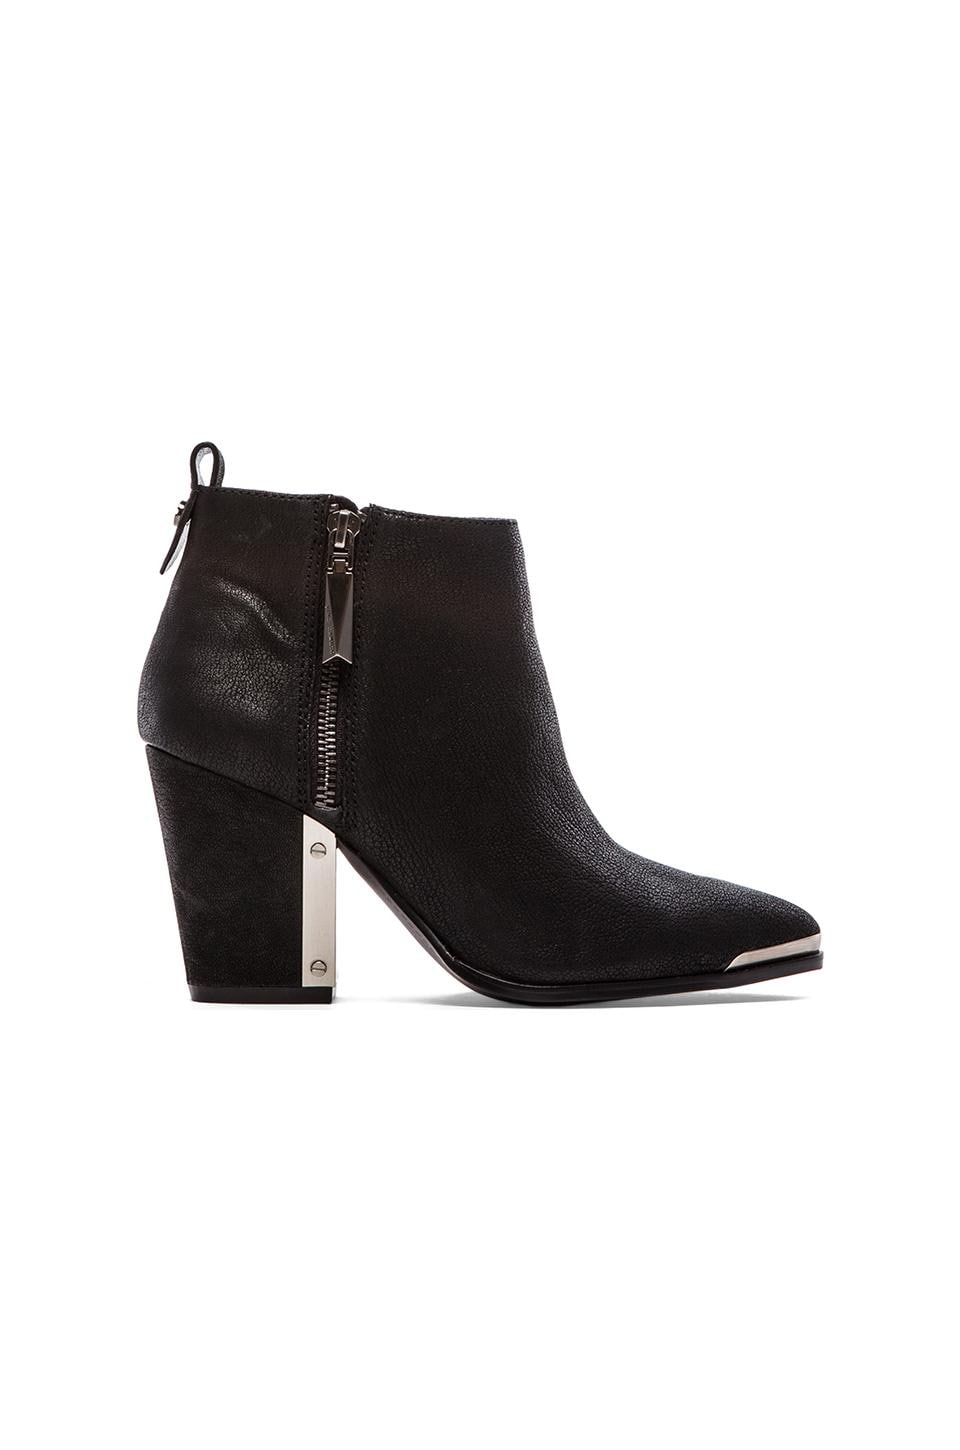 Vince Camuto Amori Bootie in Black